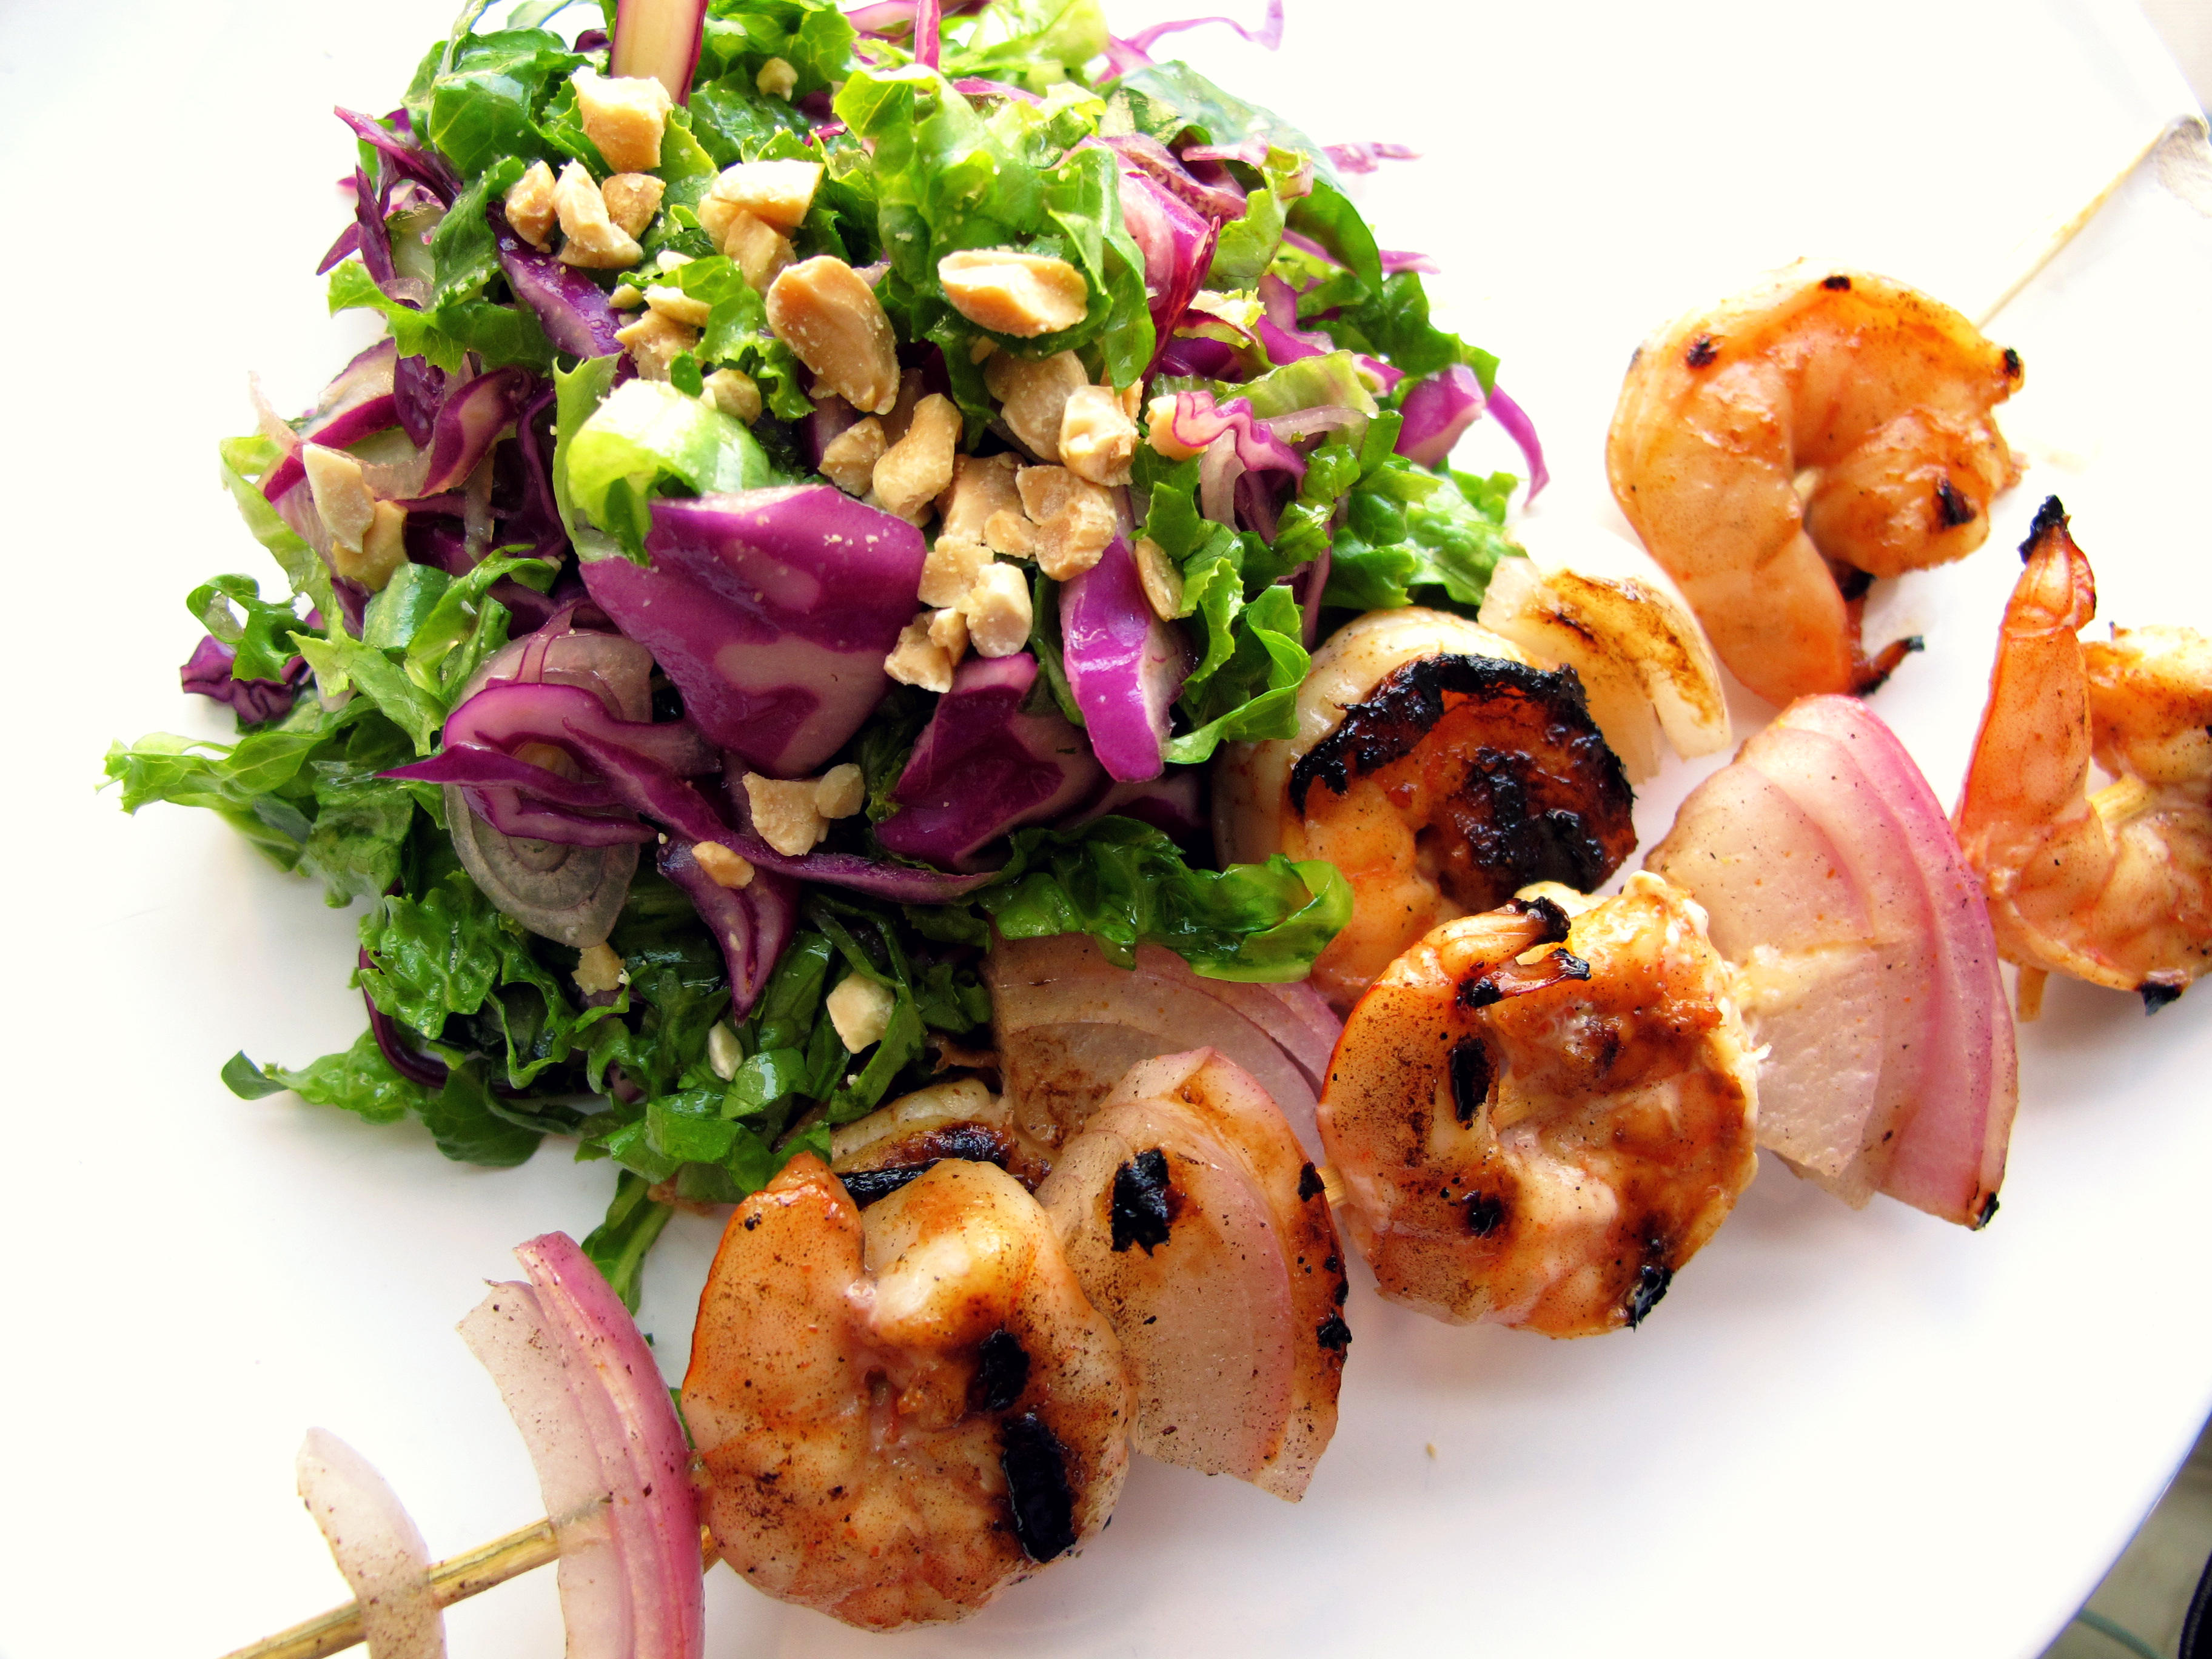 Grilled Maple Syrup Shrimp with Cabbage Salad